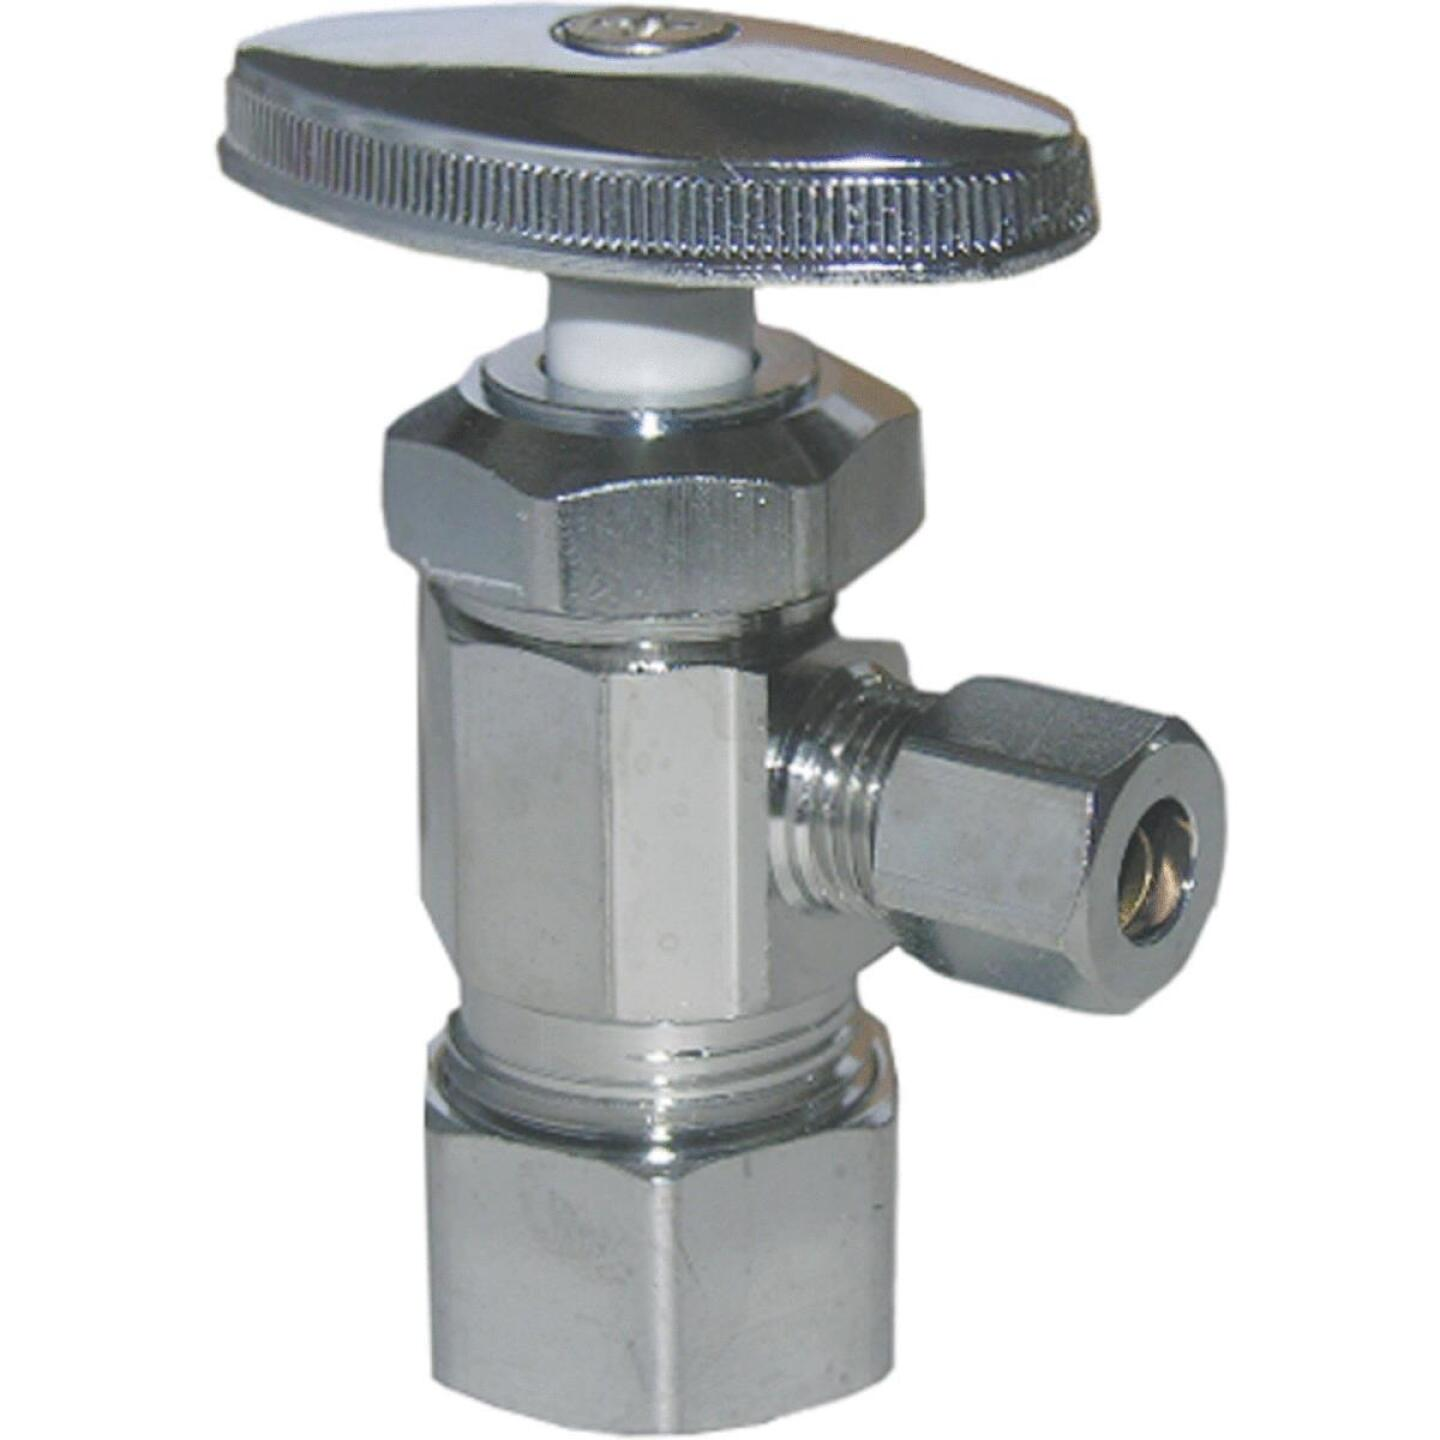 Lasco 5/8 In. Comp Inlet x 1/4 In. Comp Outlet Multi-Turn Style Angle Valve Image 1